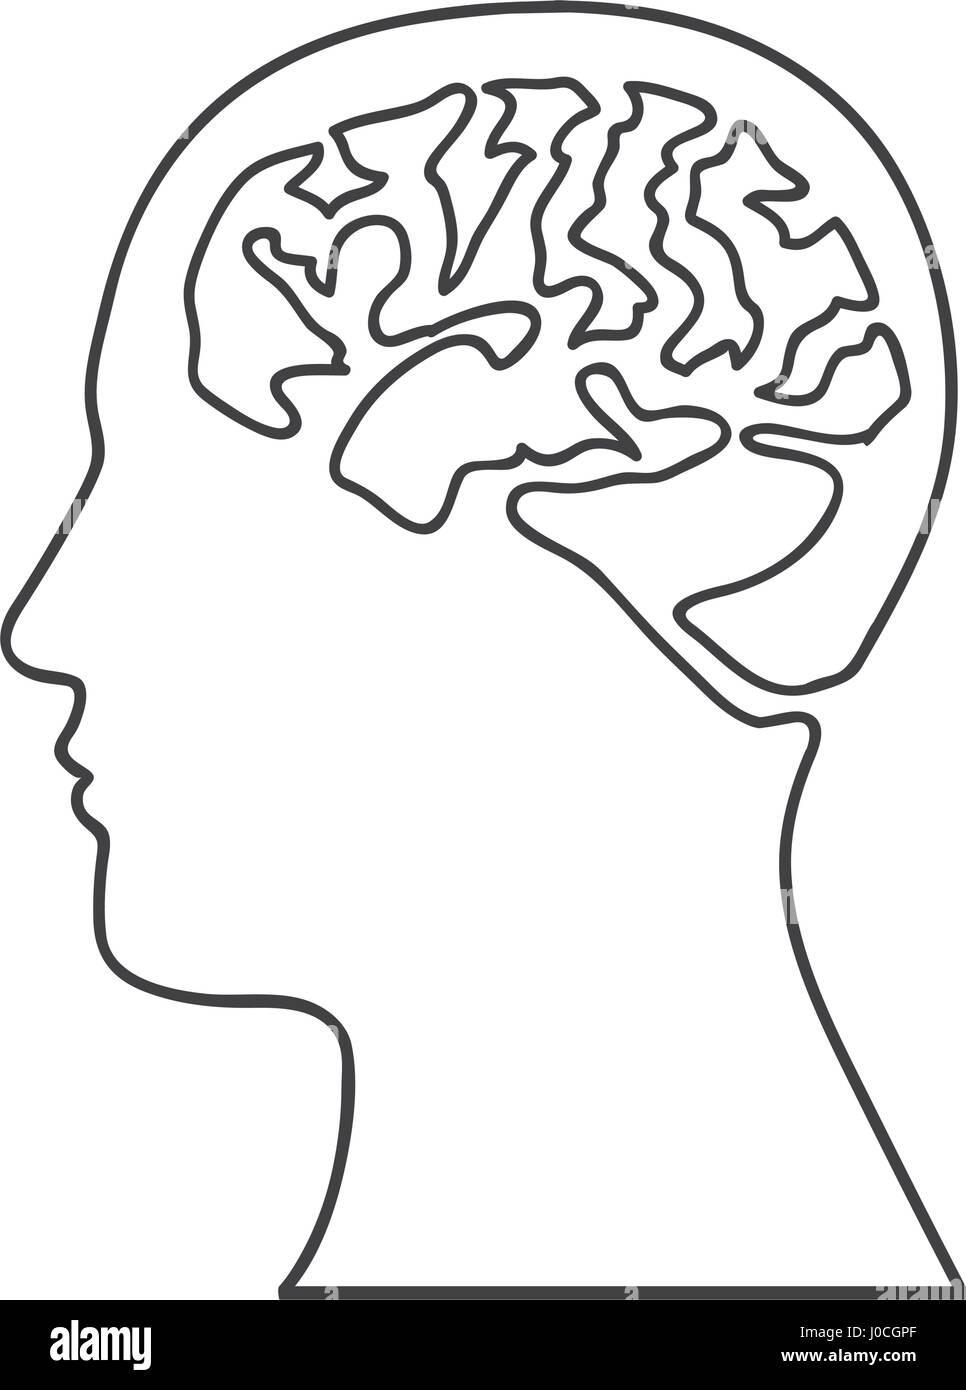 monochrome silhouette of human head with brain - Stock Image